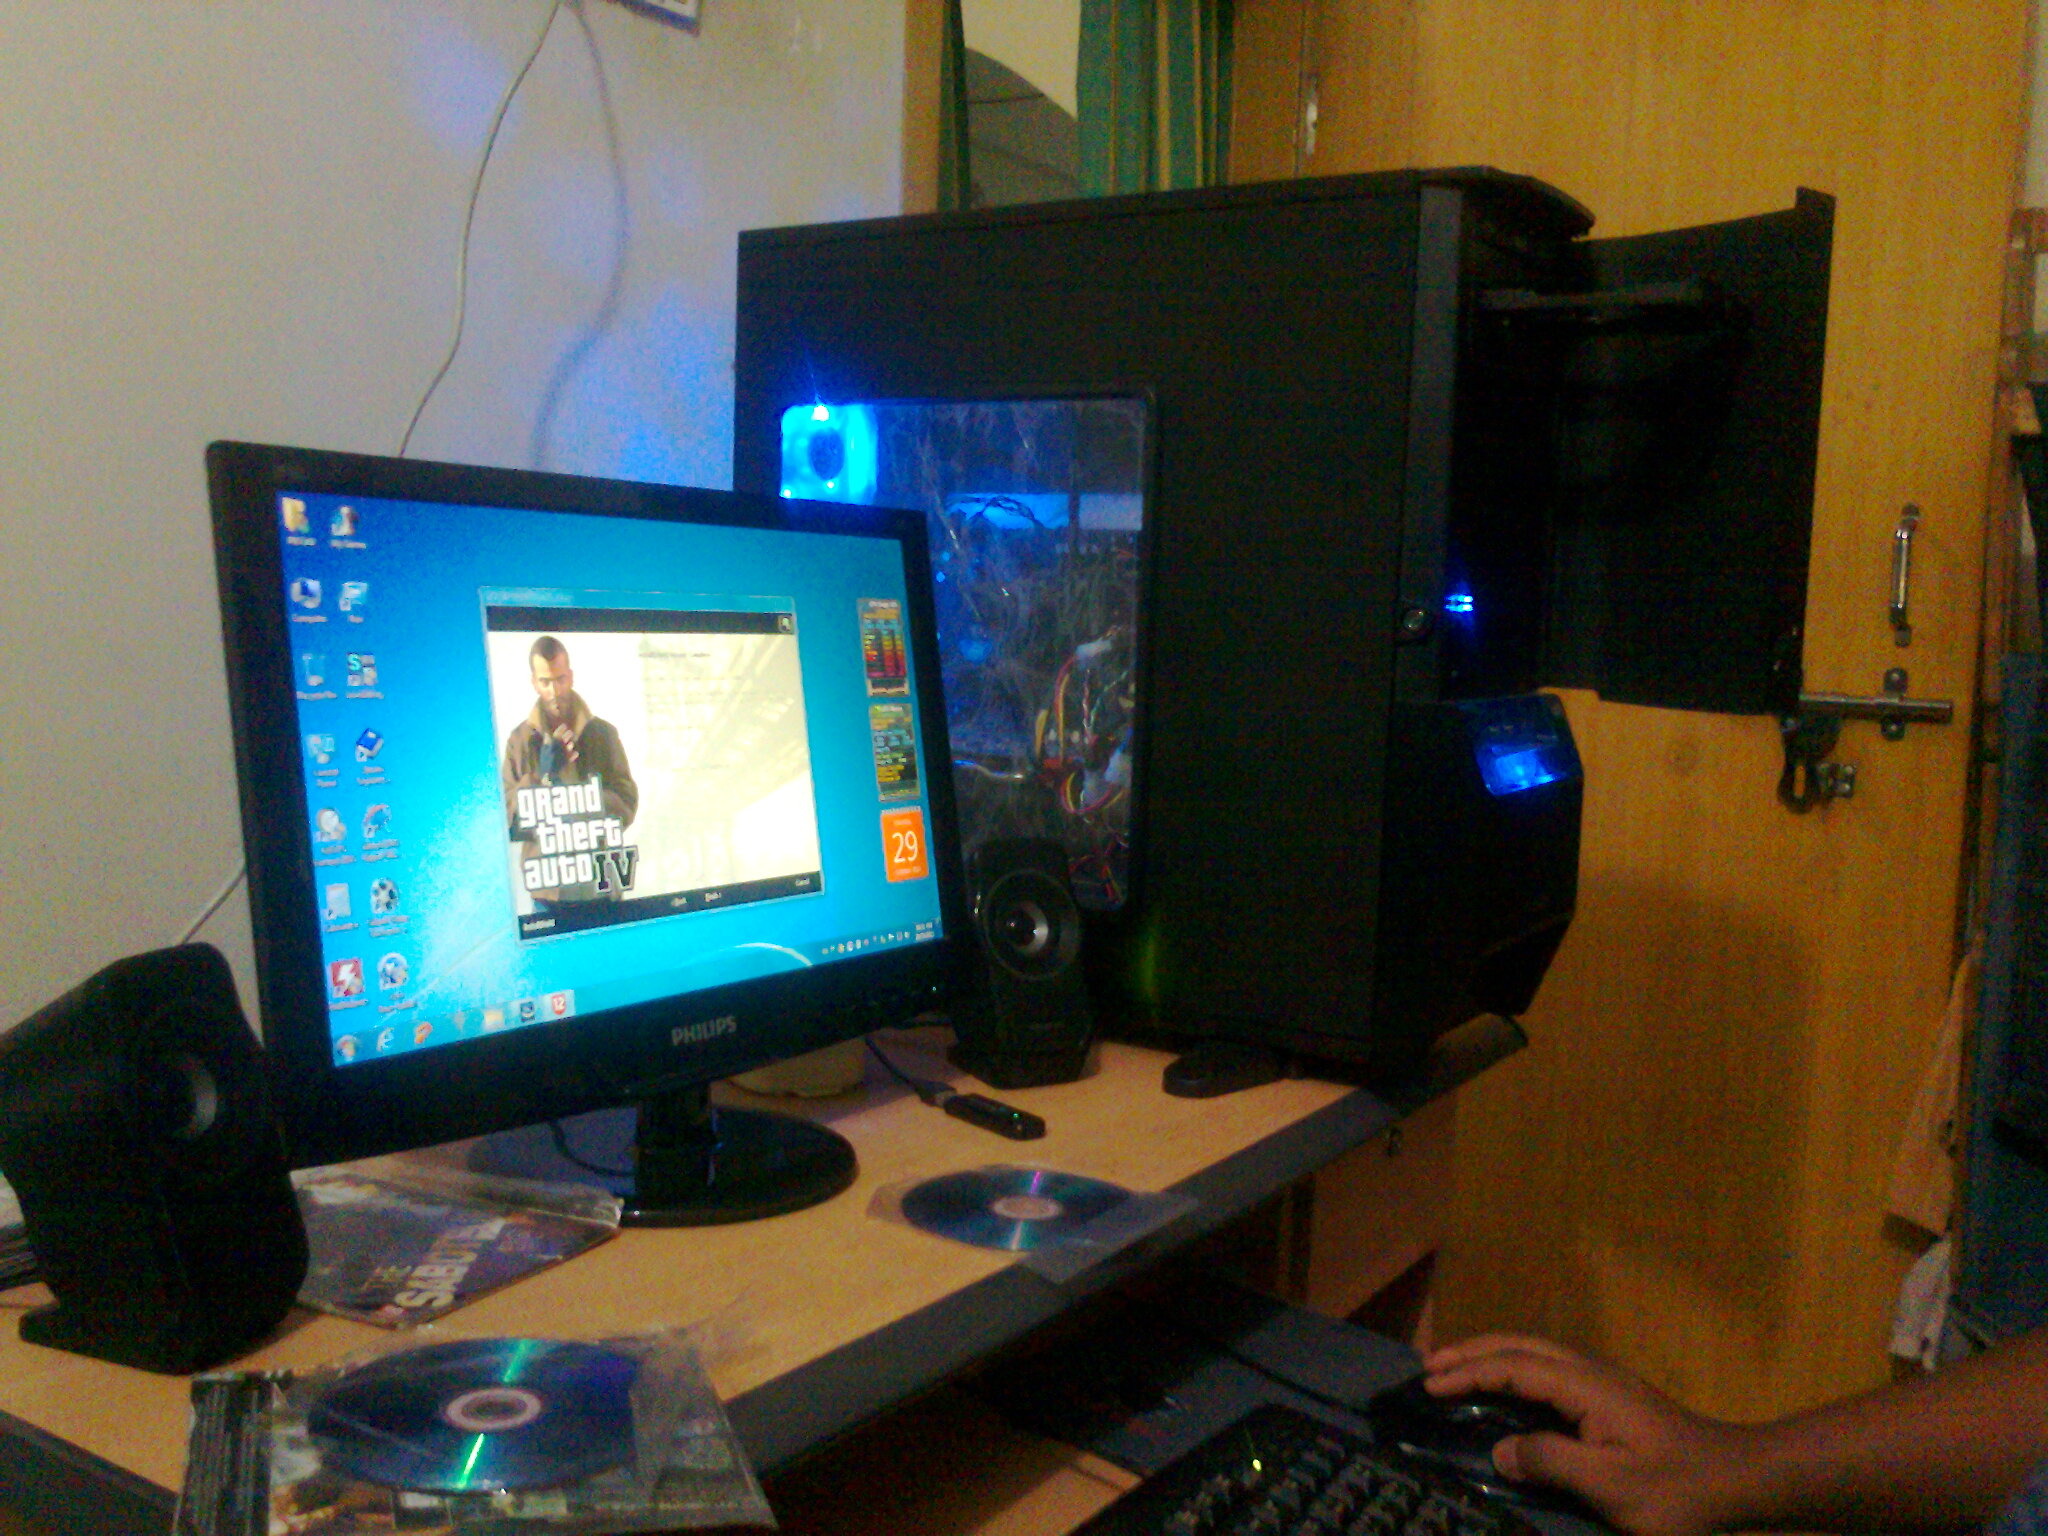 gaming pc core i7 gtx580 8gb ram 22 led etc clickbd. Black Bedroom Furniture Sets. Home Design Ideas